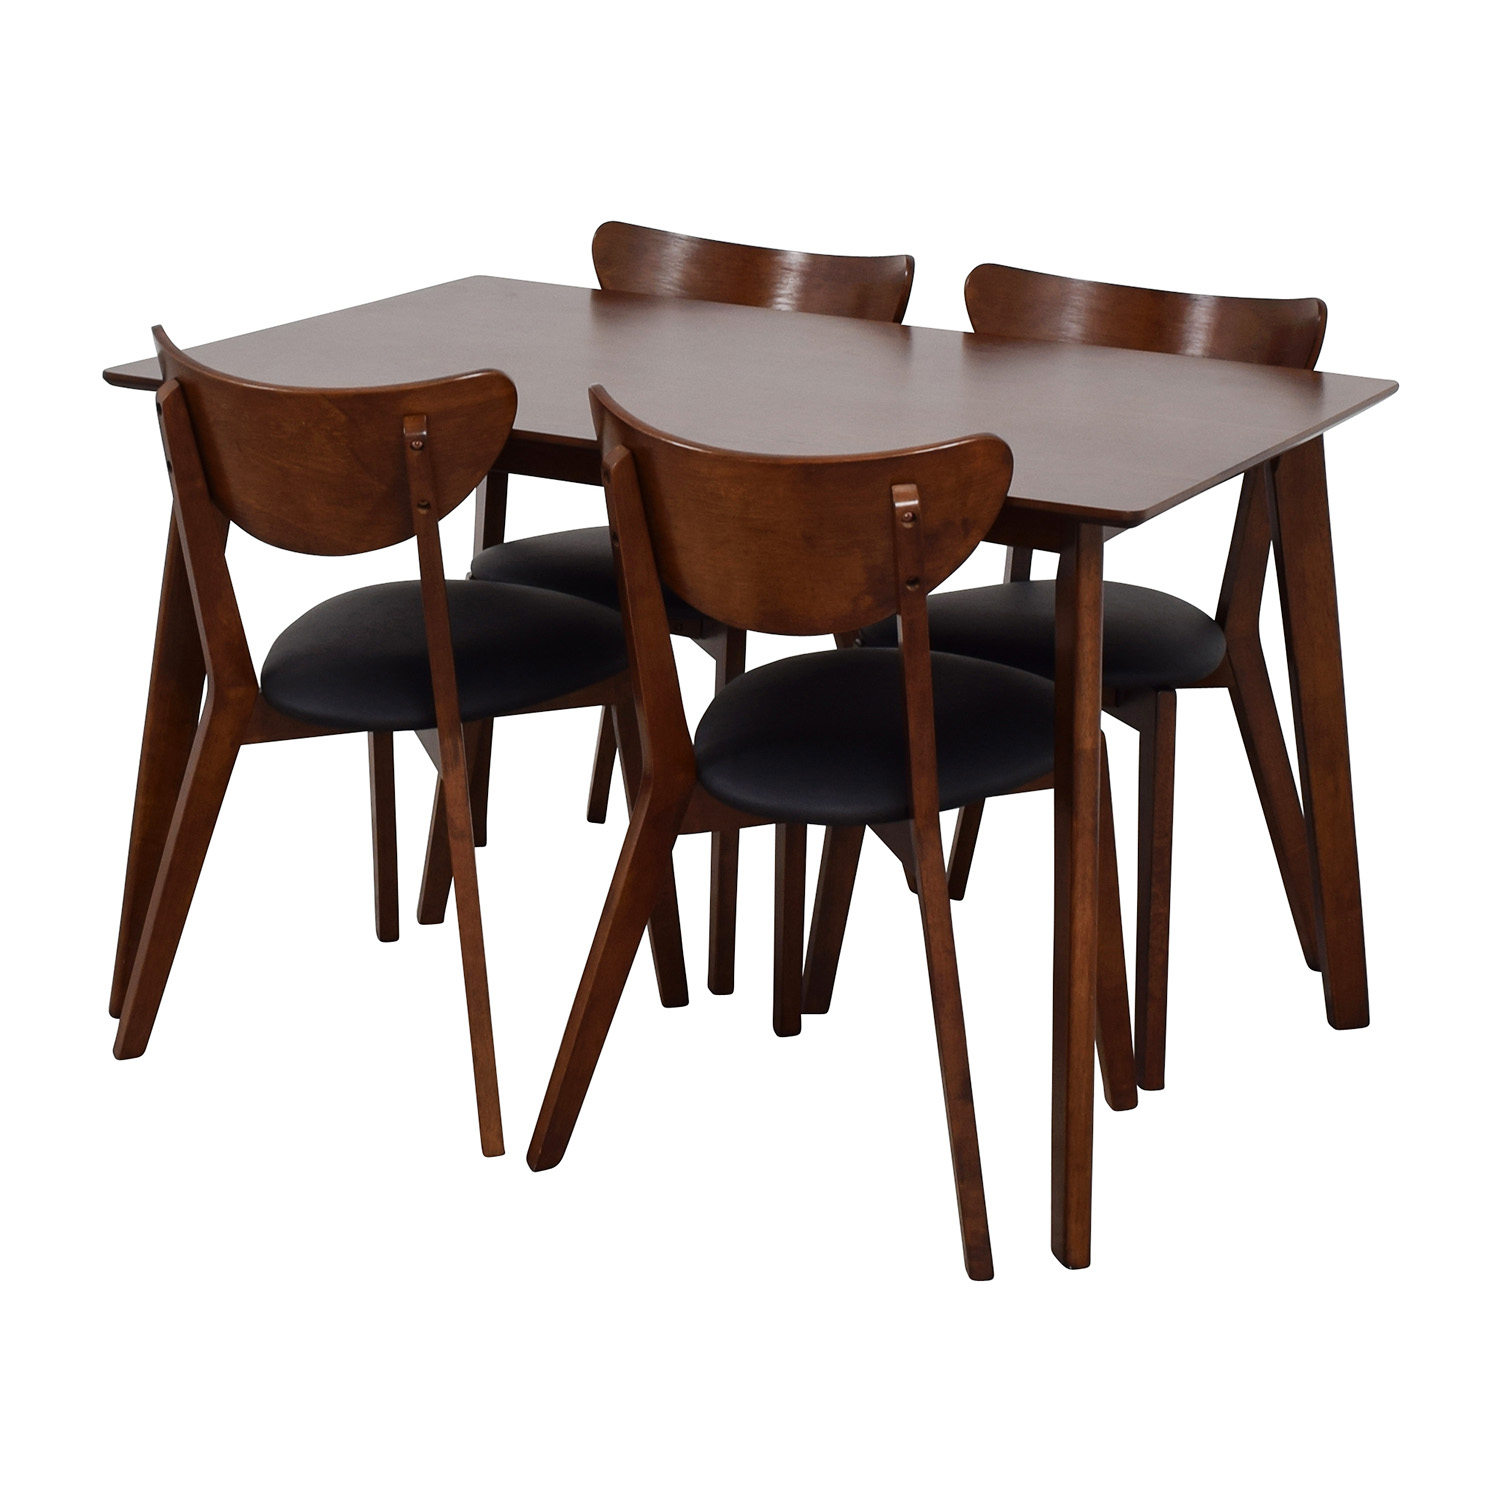 Dinner Table Set For 4 Of 35 Off Wholesale Interiors Brown Dining Table Set With